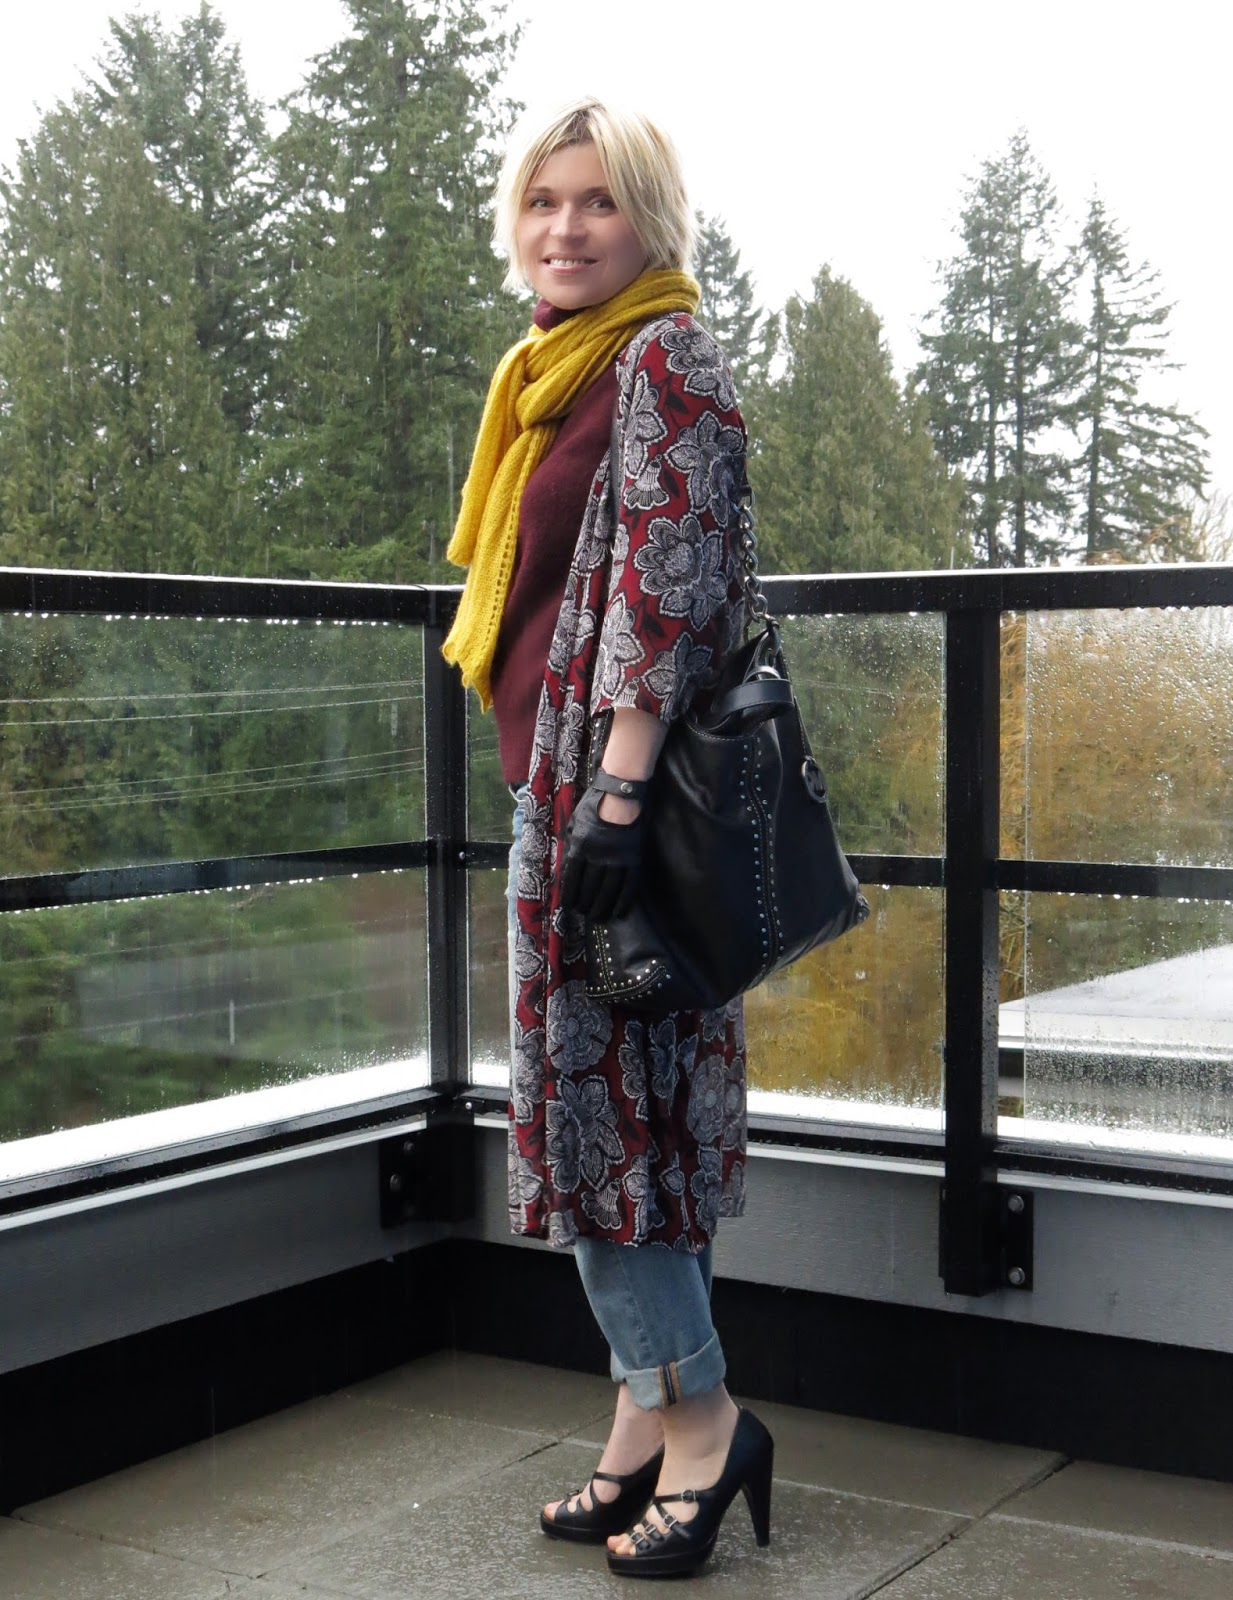 styling a maroon turtleneck sweater with a kimono, scarf, and boyfriend jeans